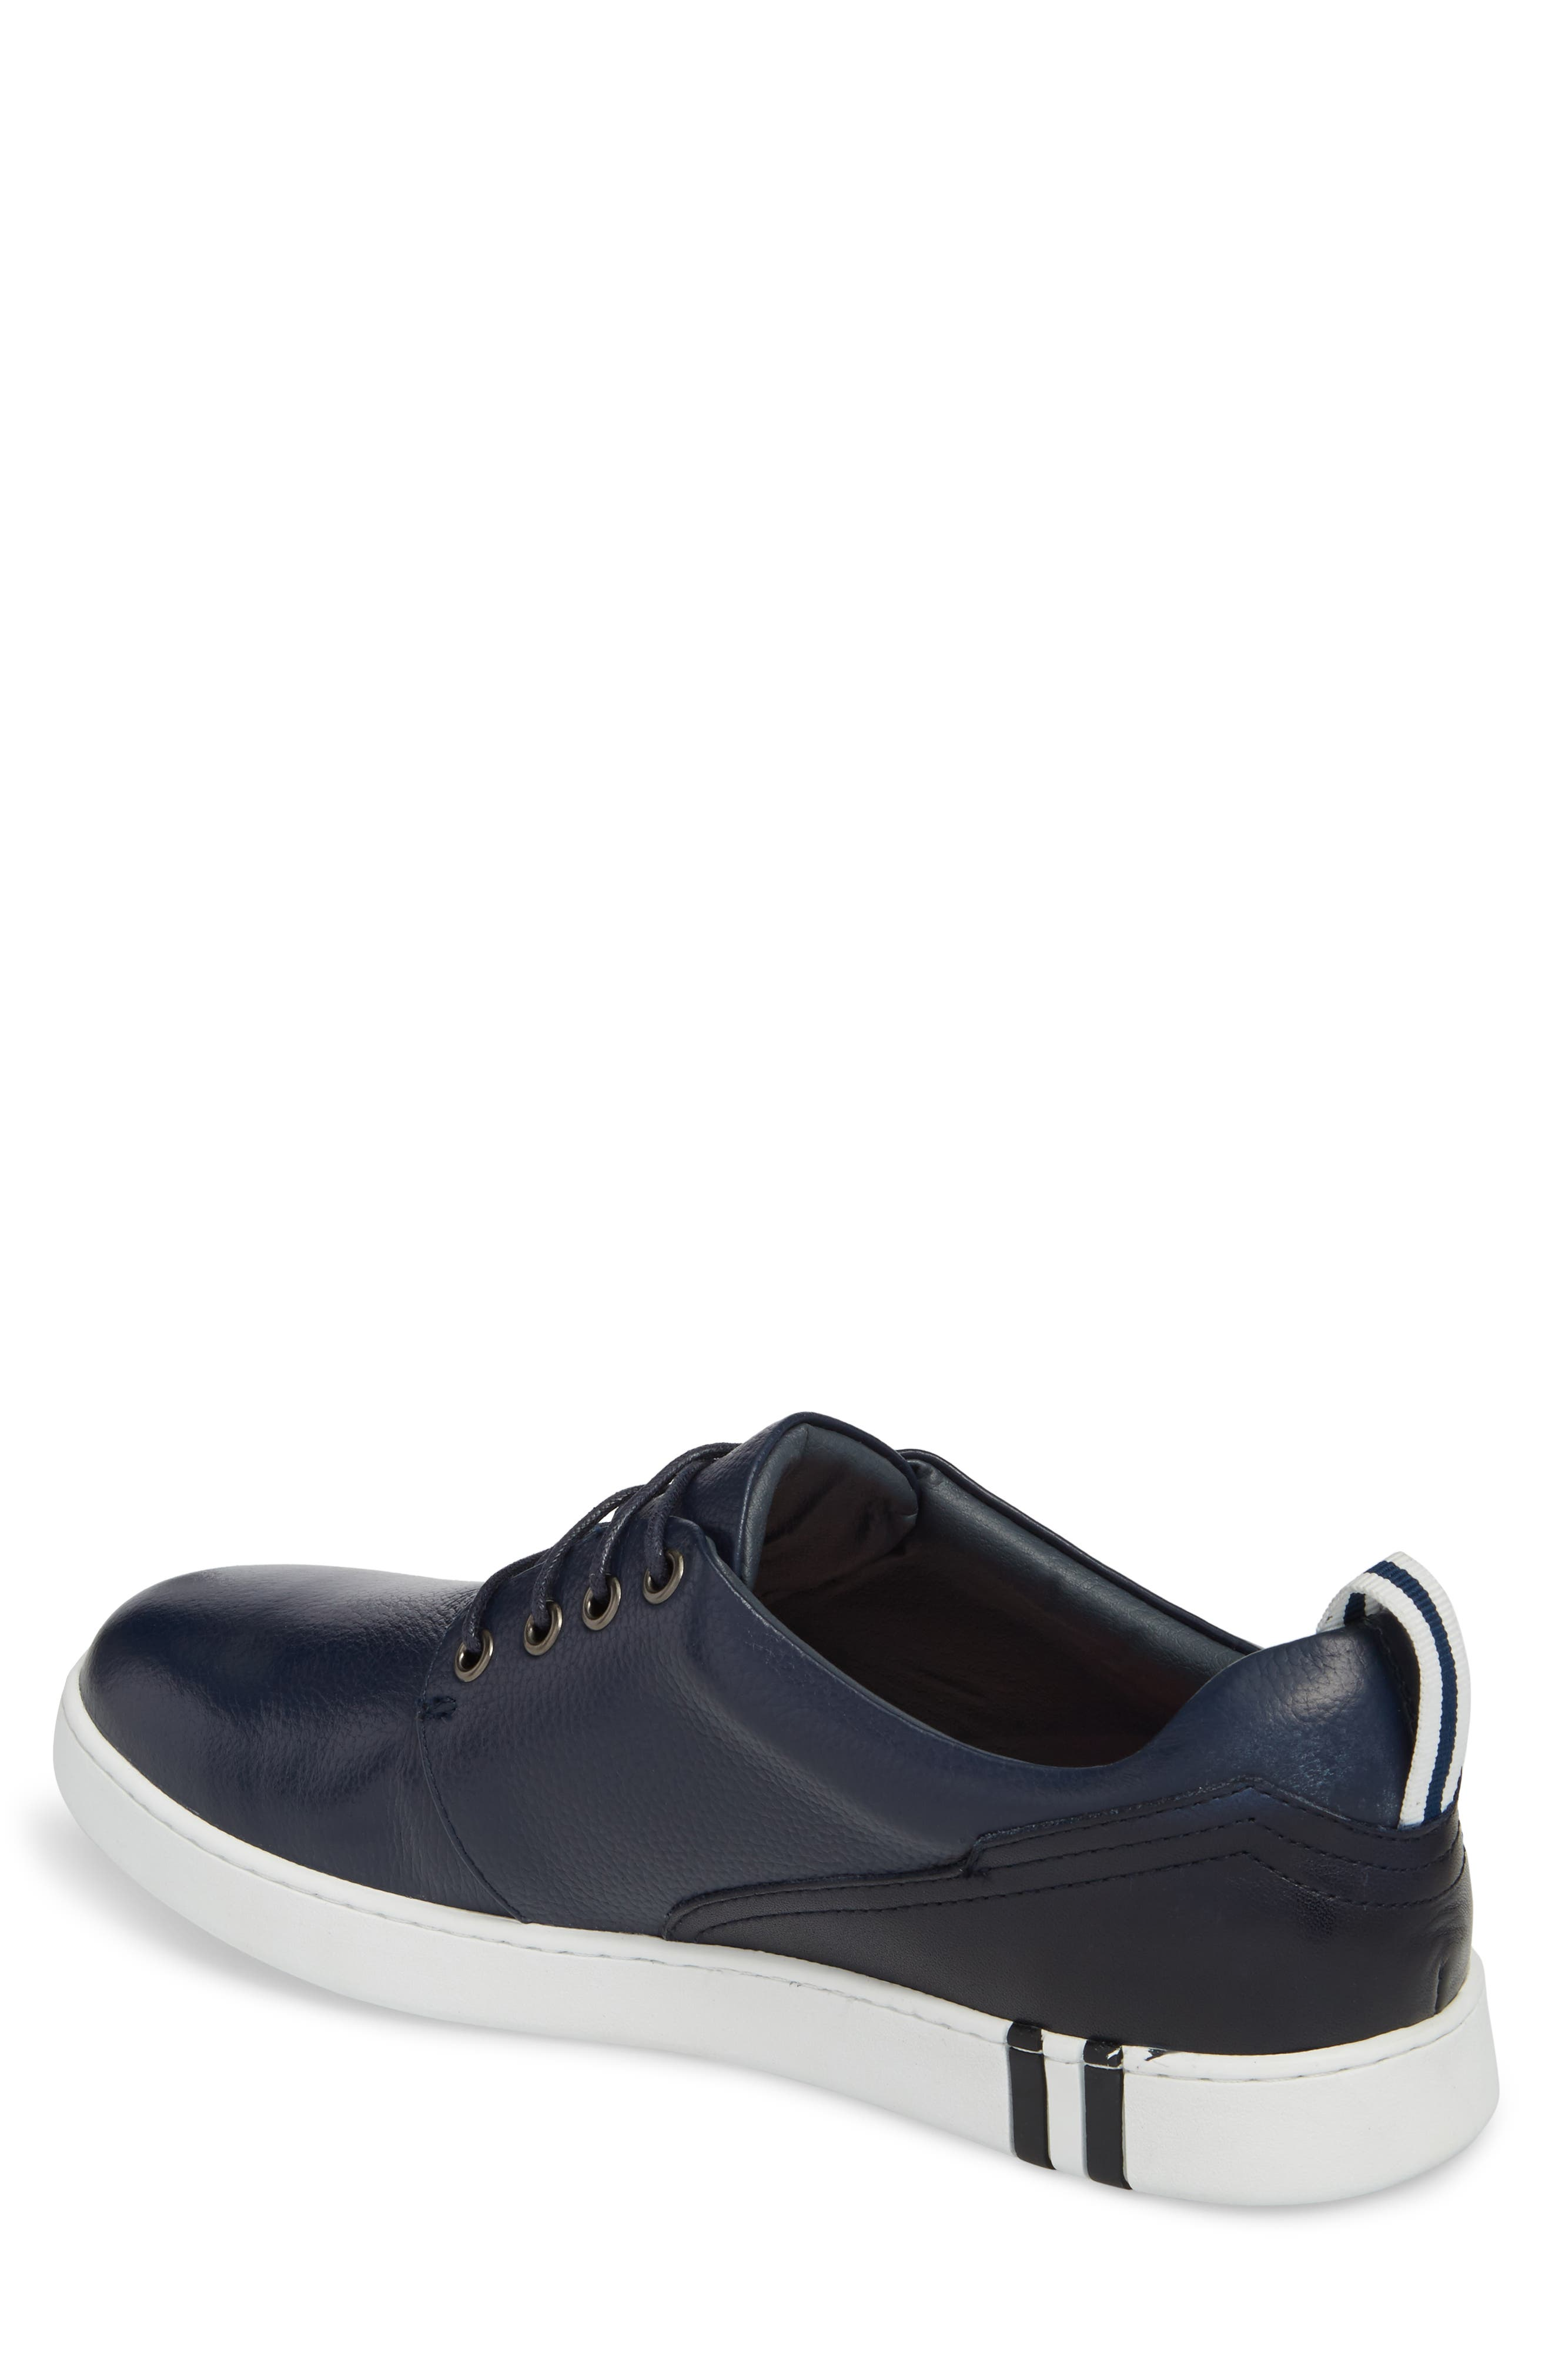 Kings Low Top Sneaker,                             Alternate thumbnail 2, color,                             Navy Leather